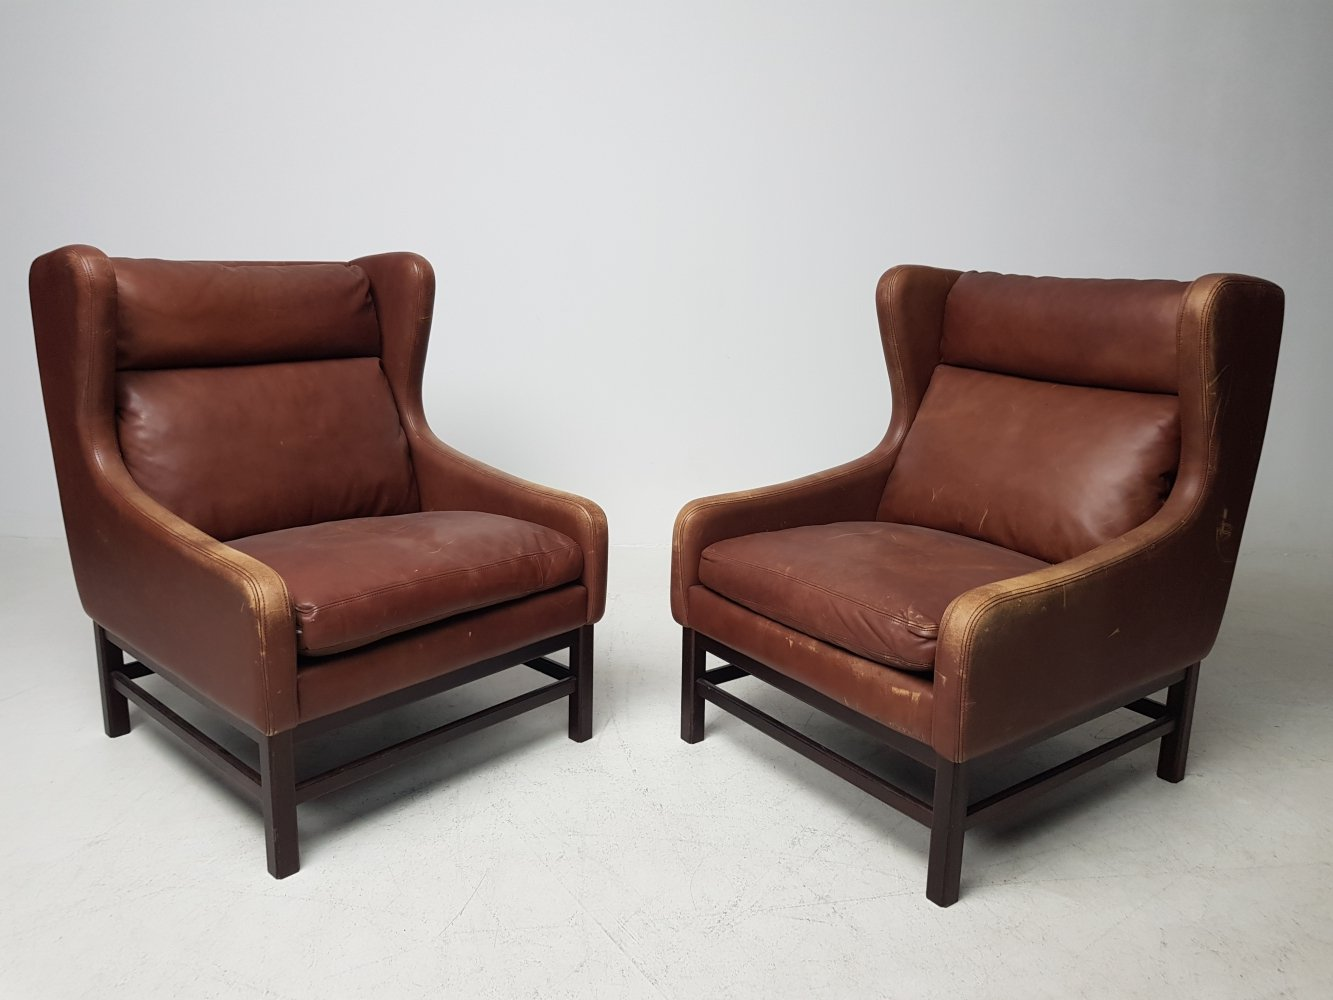 Danish architectural set of 2 armchairs, 1960